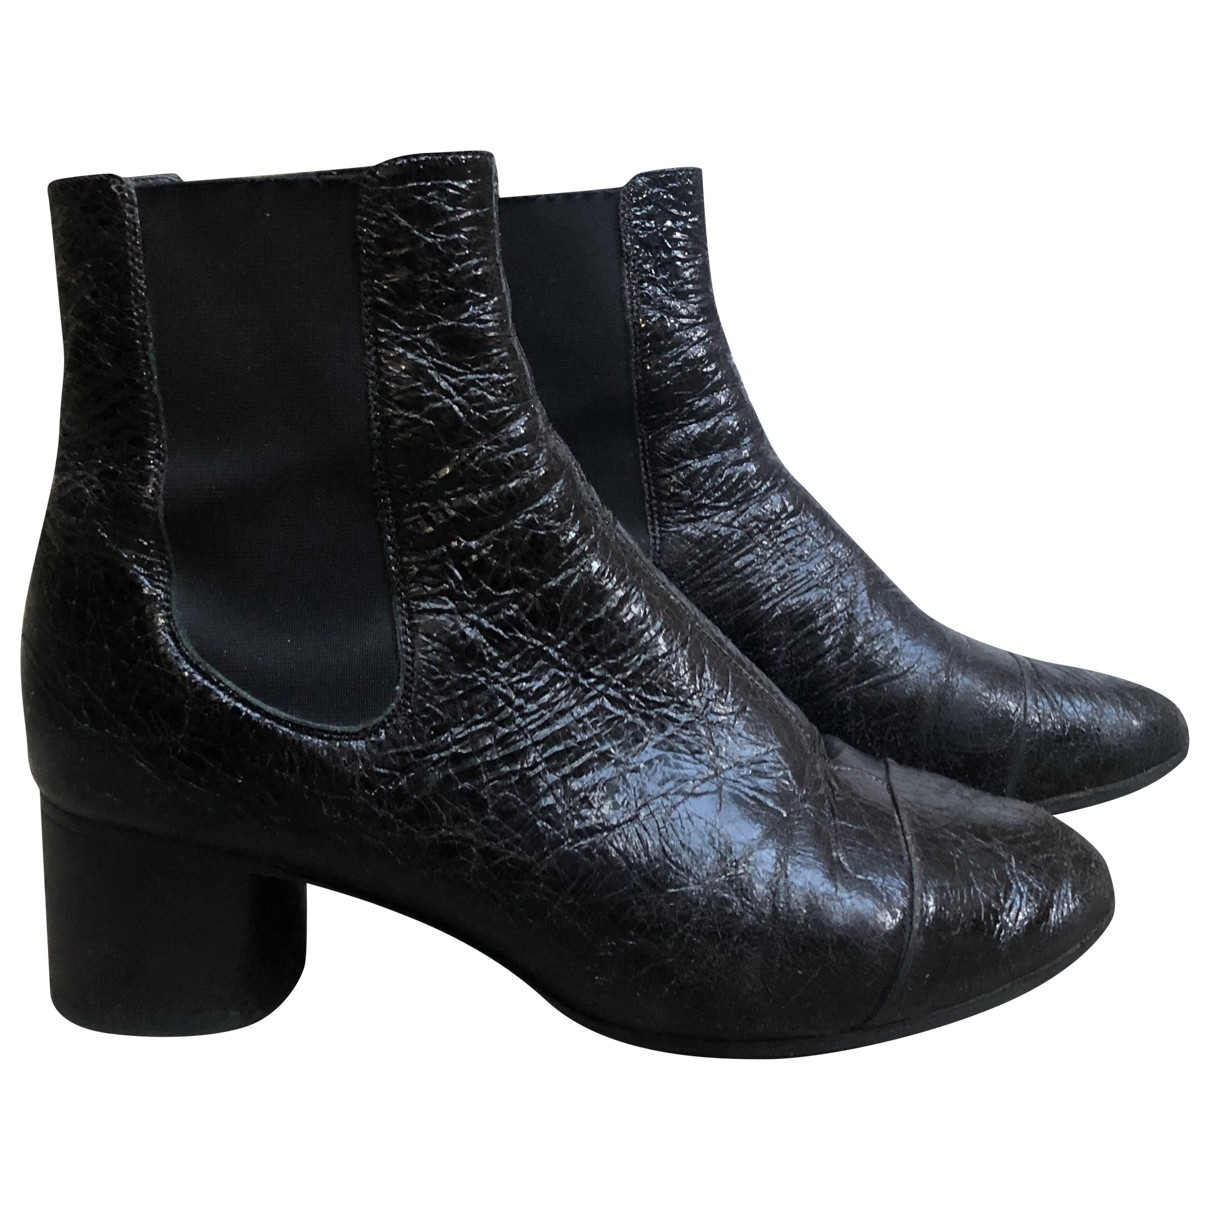 Isabel Marant Danae Black Patent leather Ankle boots for Women 36 EU